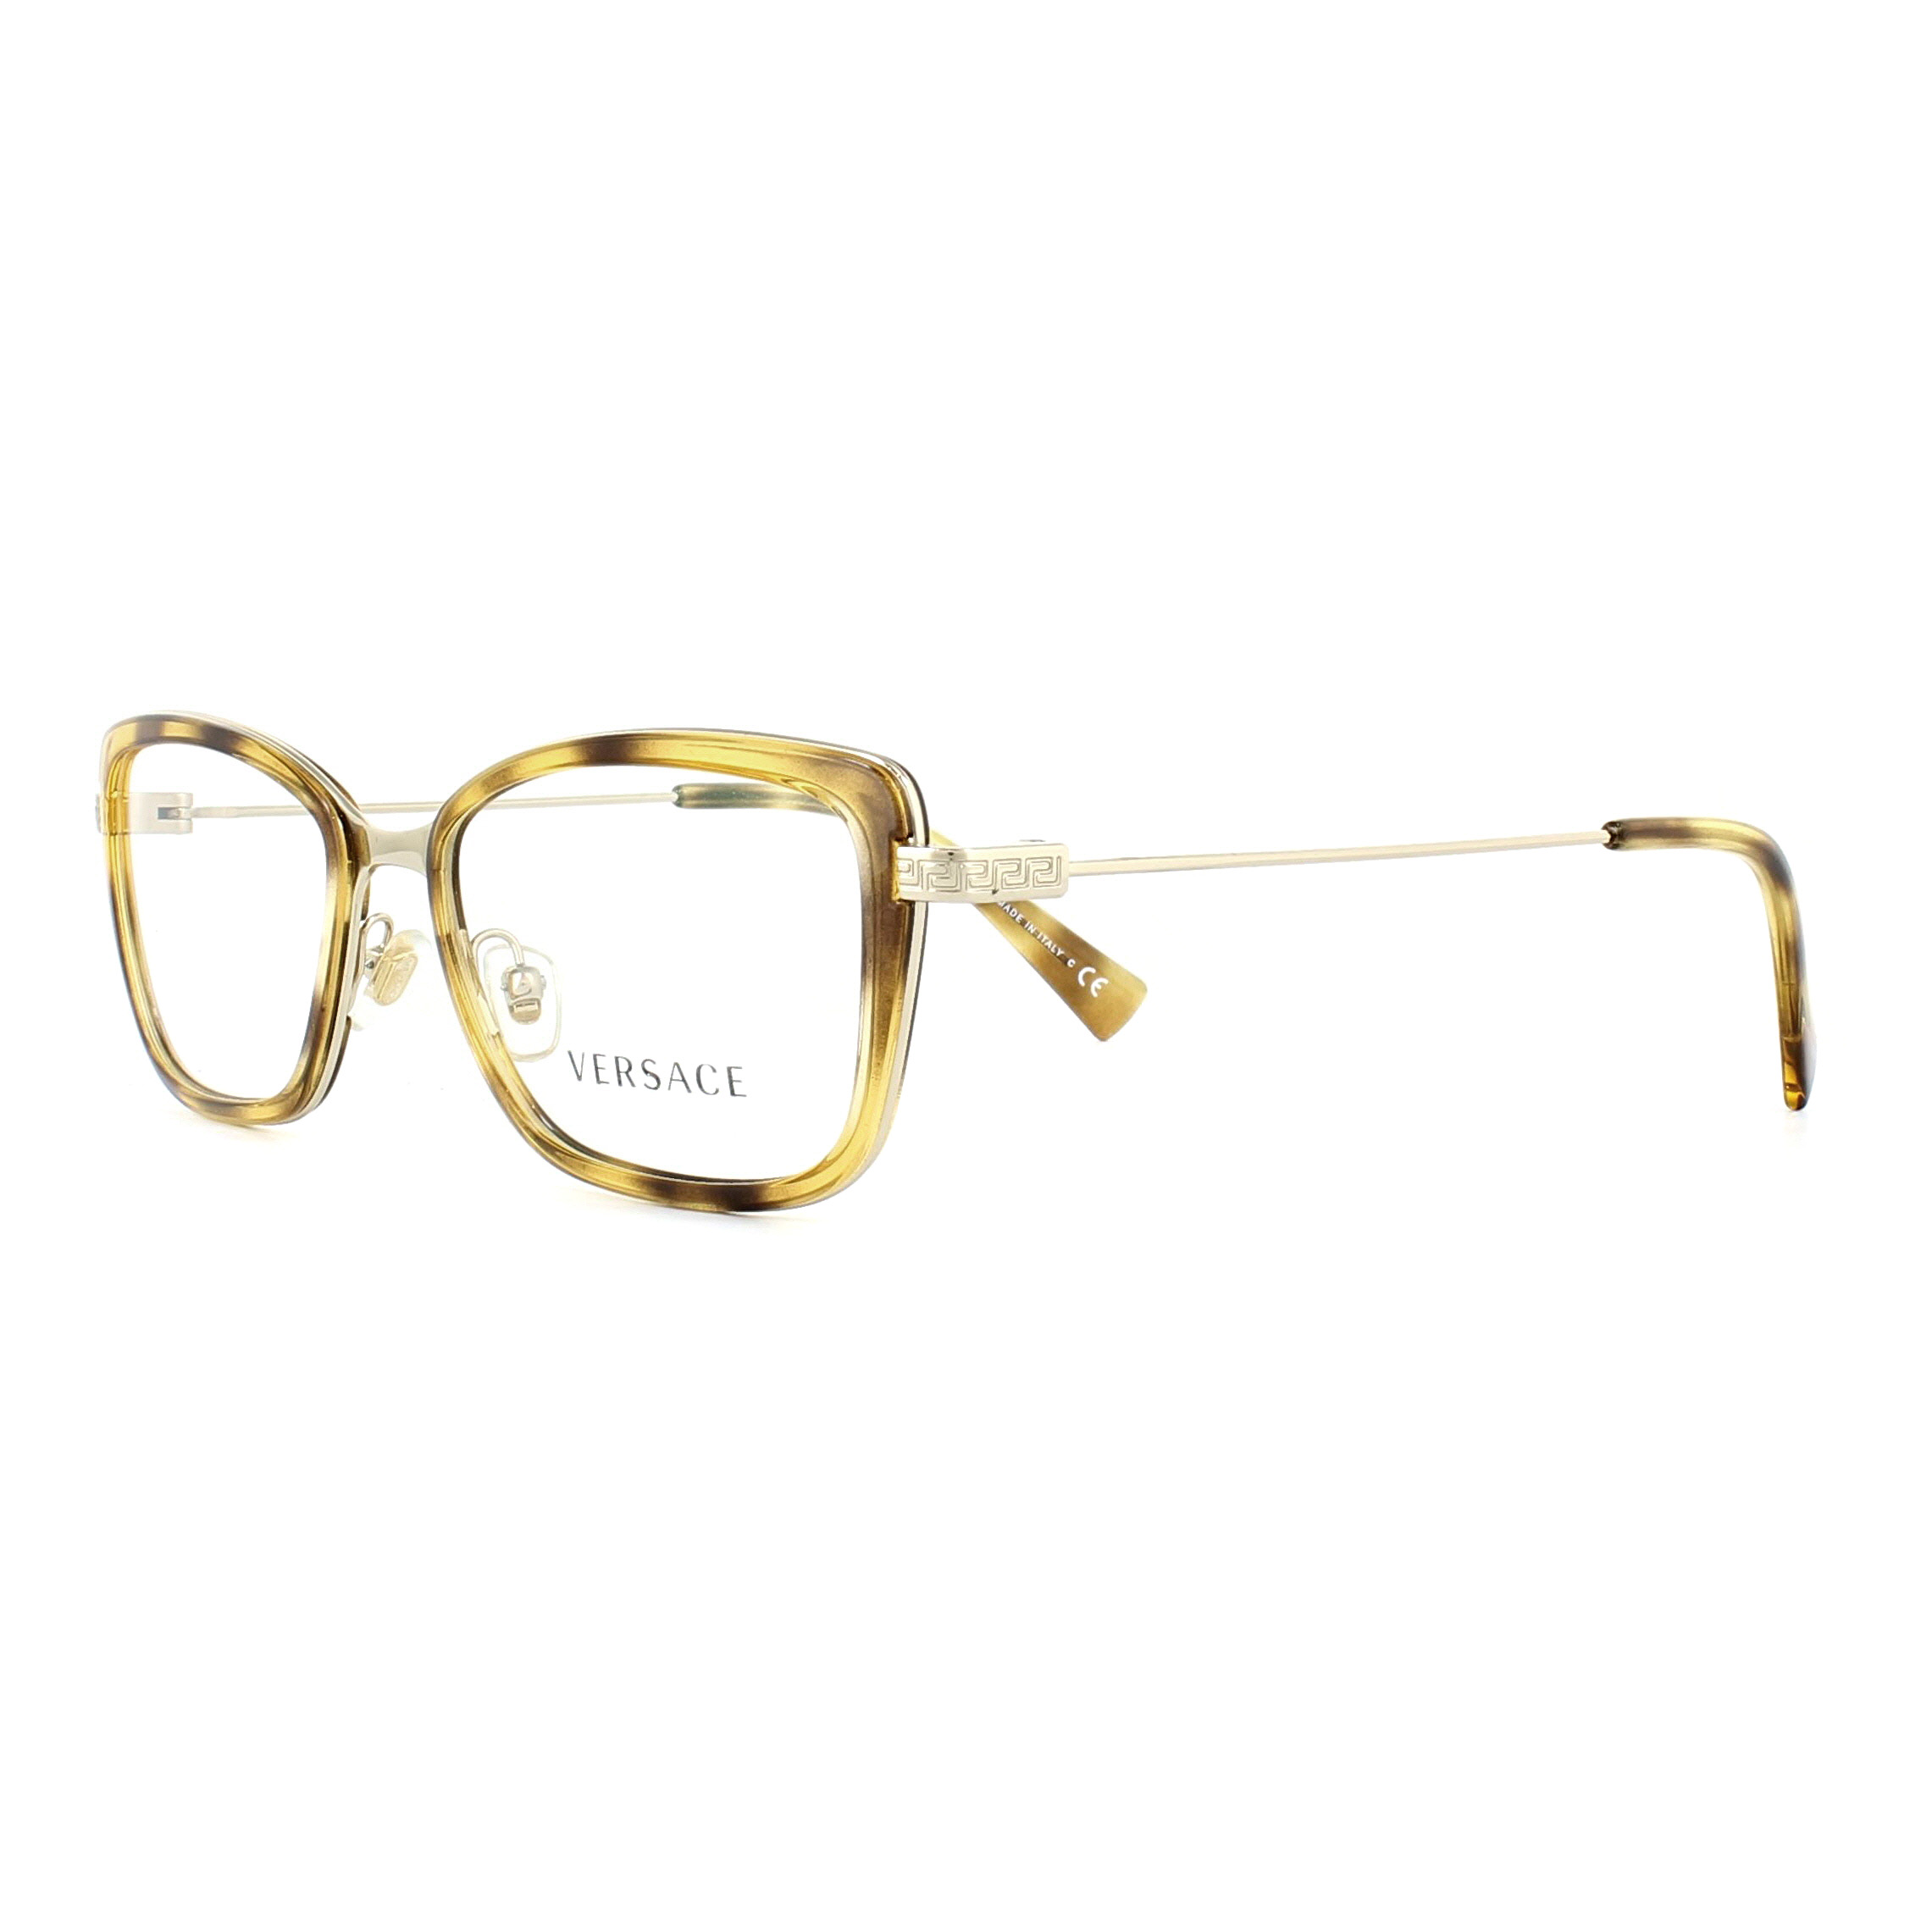 Versace Glasses Frames 1243 1400 Havana and Pale Gold 52mm Womens ...